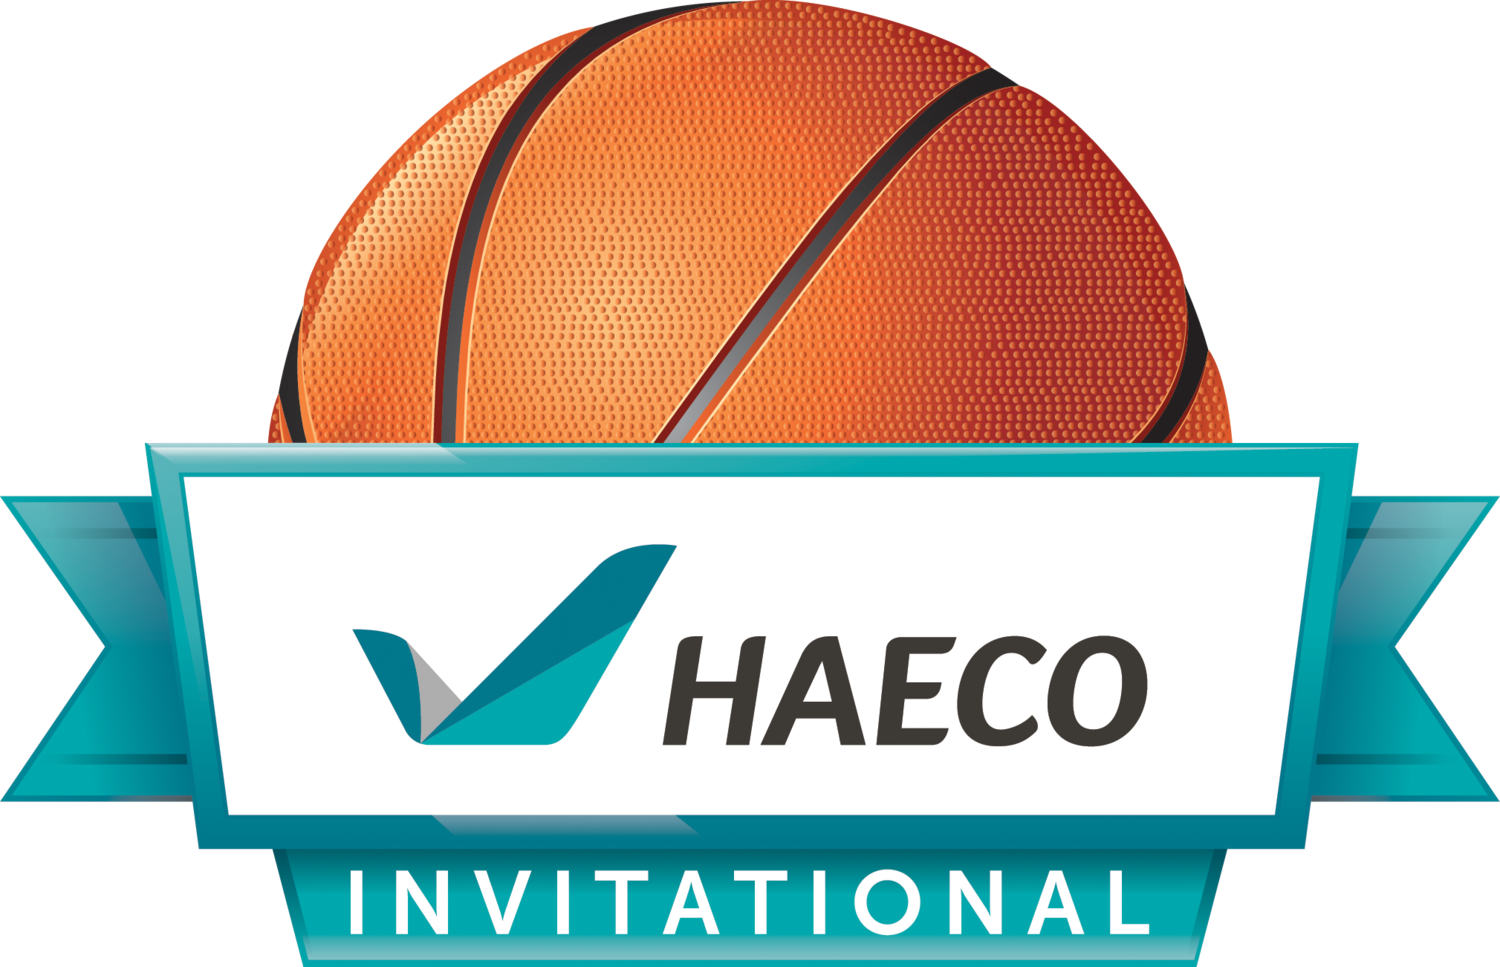 HAECO INVITATIONAL